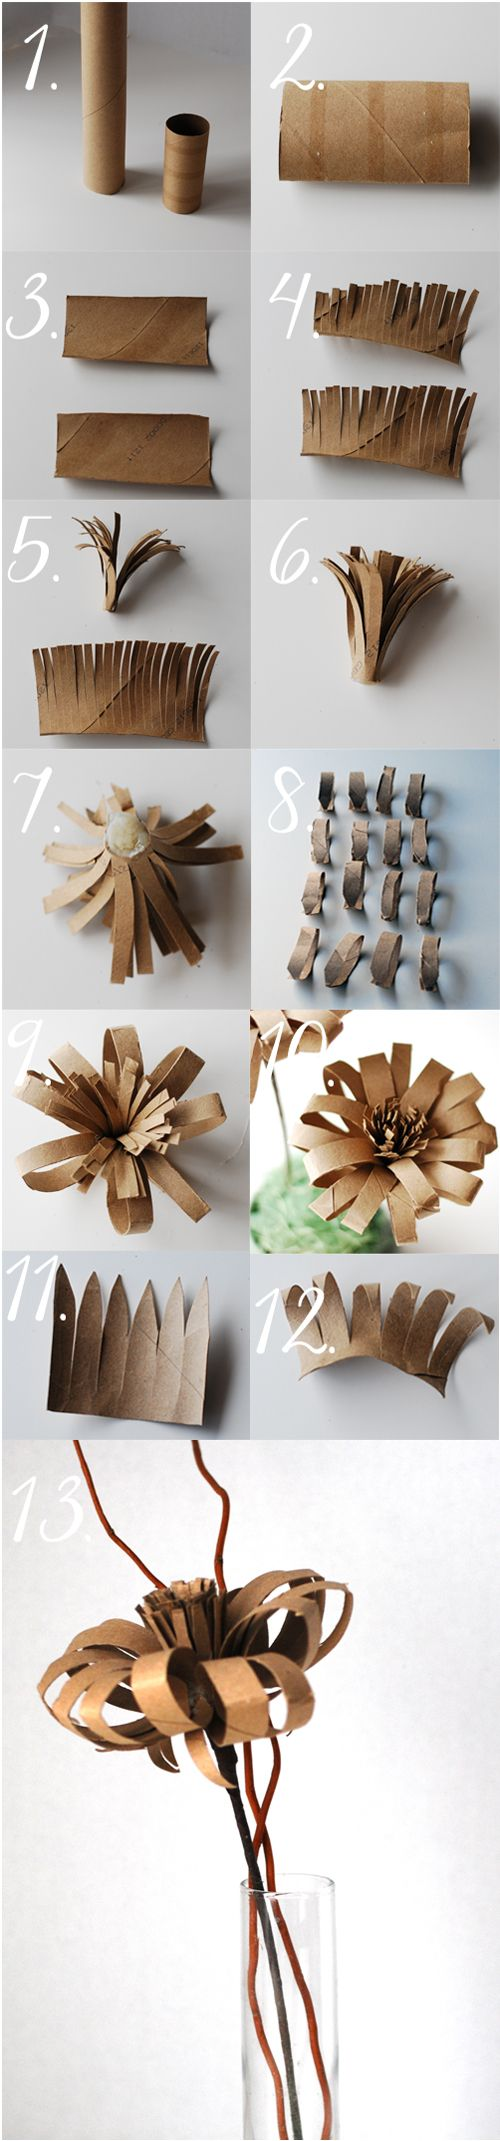 Paper Flower Made From A Recycled Wrapping Paper Tube And A Recycled Toilet  Paper Roll